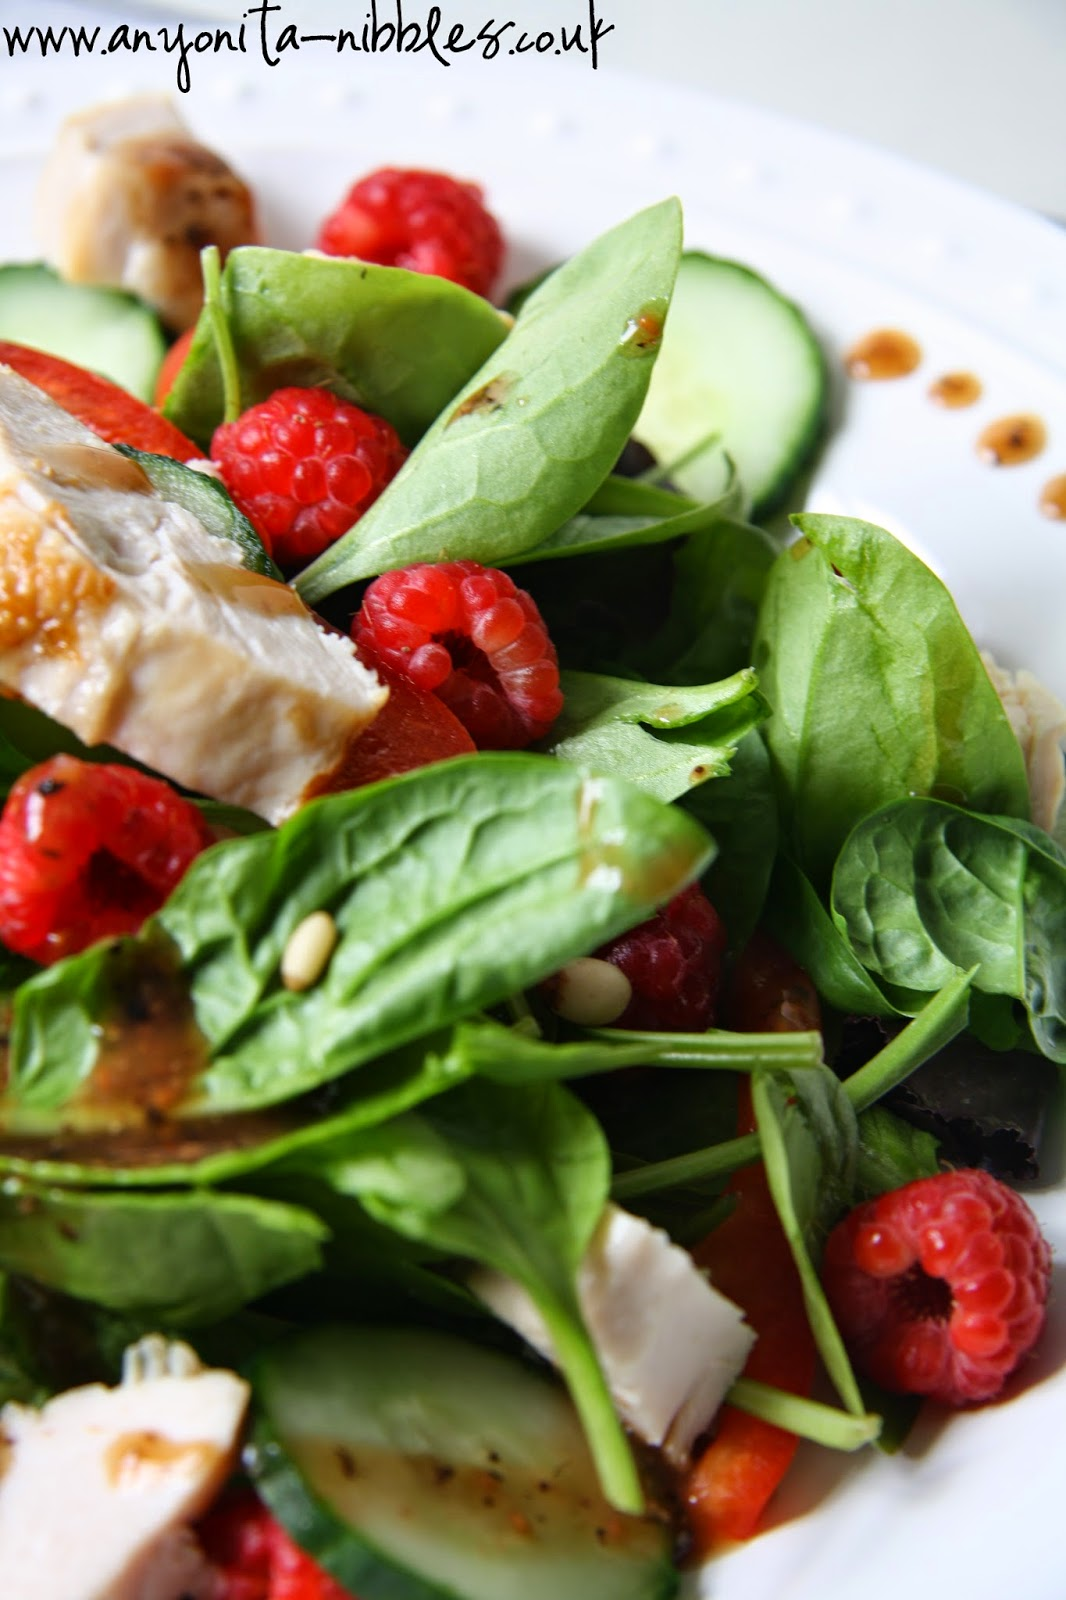 Fresh fruit and chicken spinach salad from www.anyonita-nibbles.co.uk #glutenfree